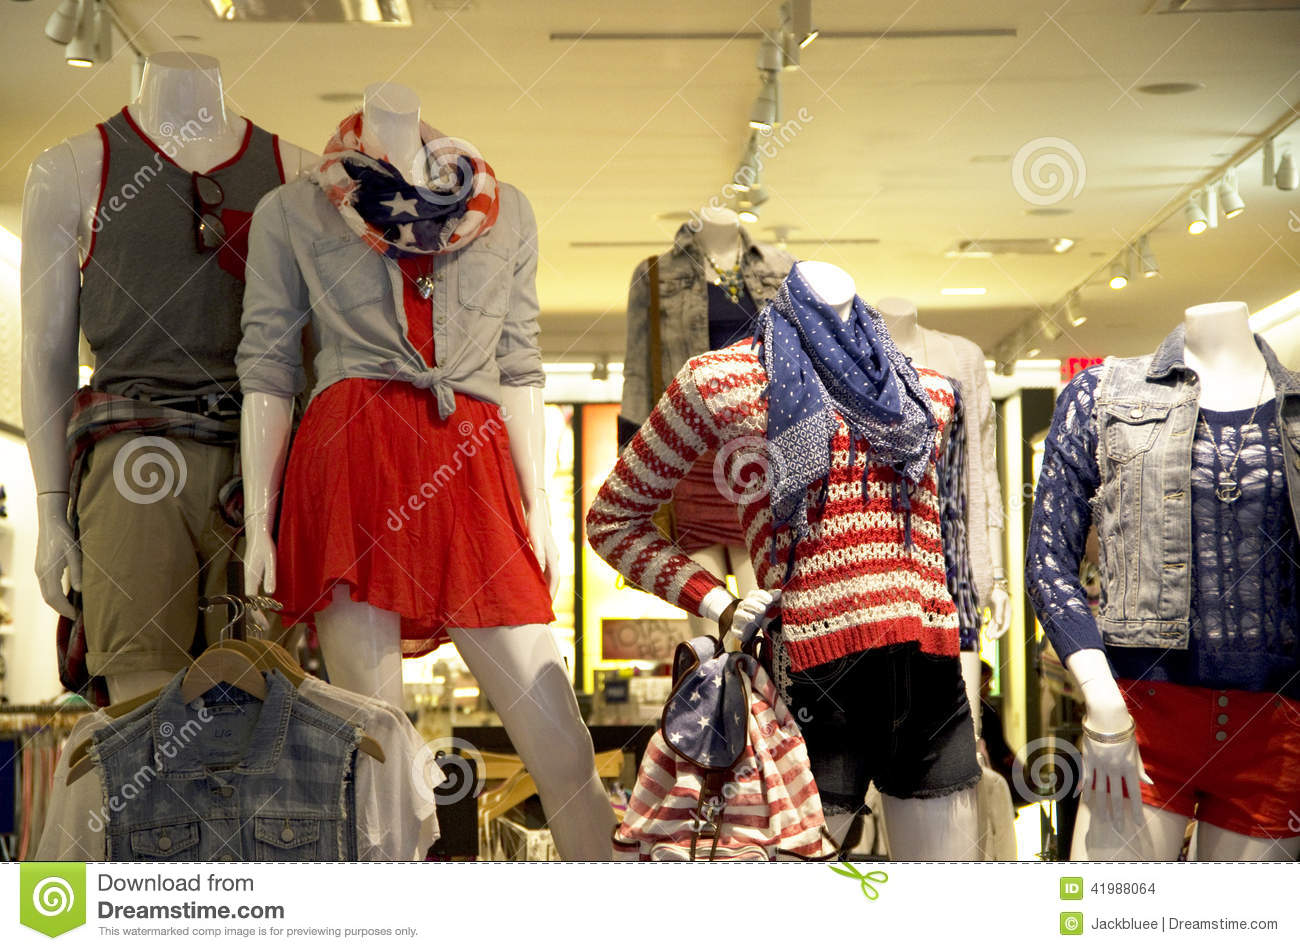 Cloth stores near me. Clothes stores